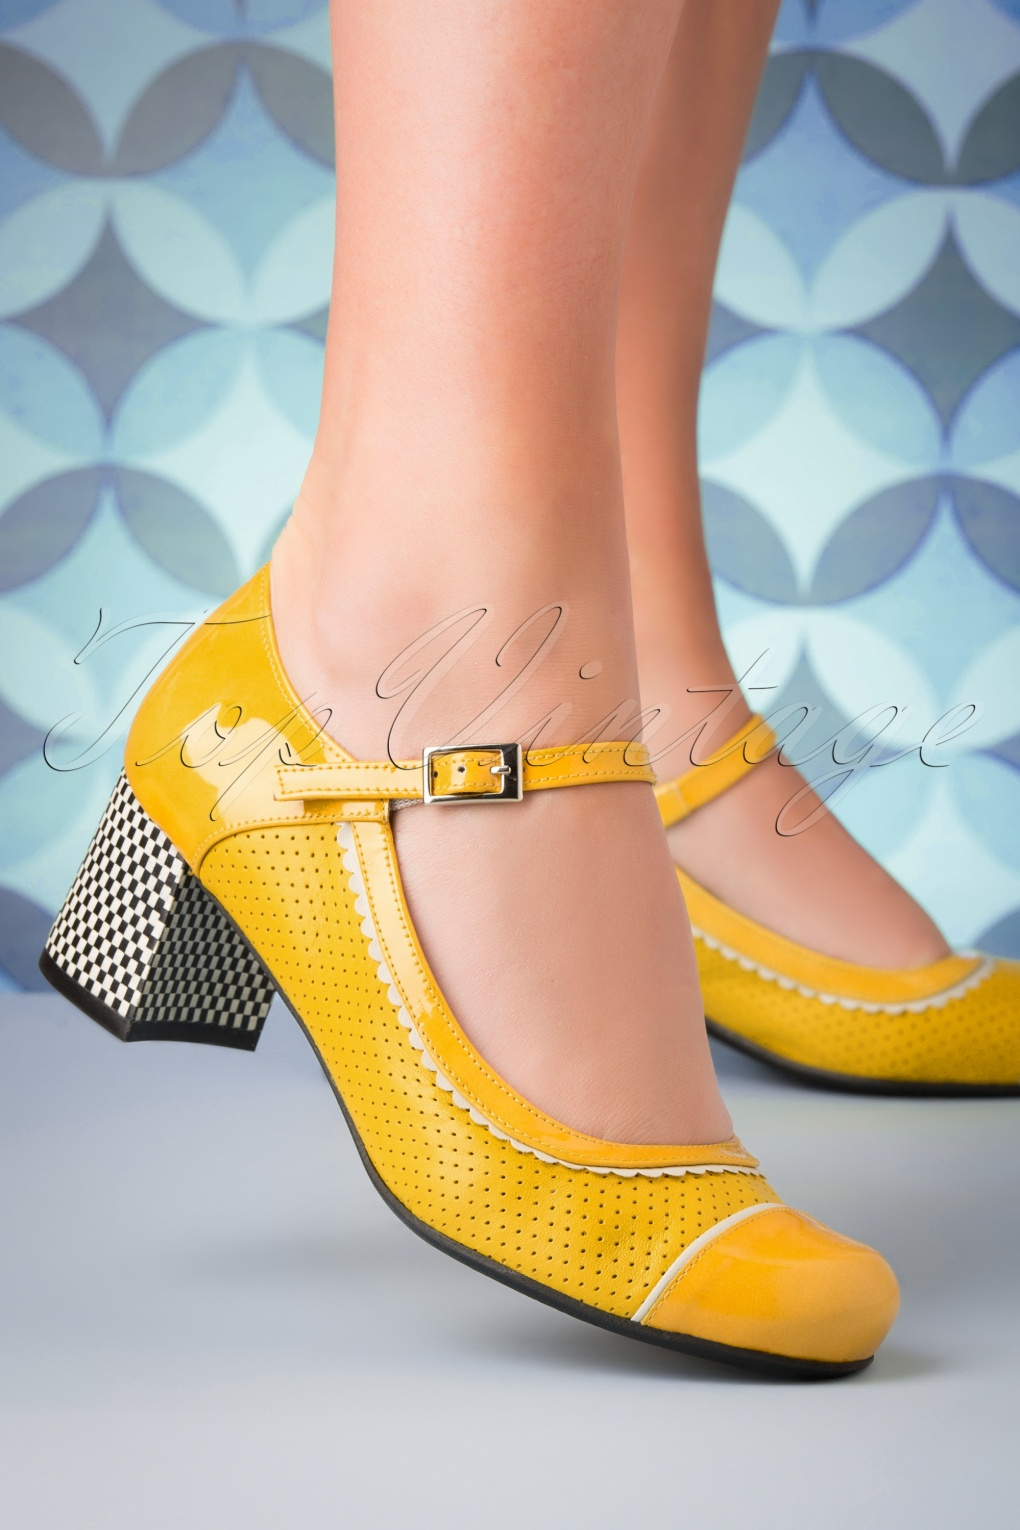 60s Dresses & 60s Style Dresses UK 60s Vintage Piso Leather Pumps in Yellow £86.41 AT vintagedancer.com